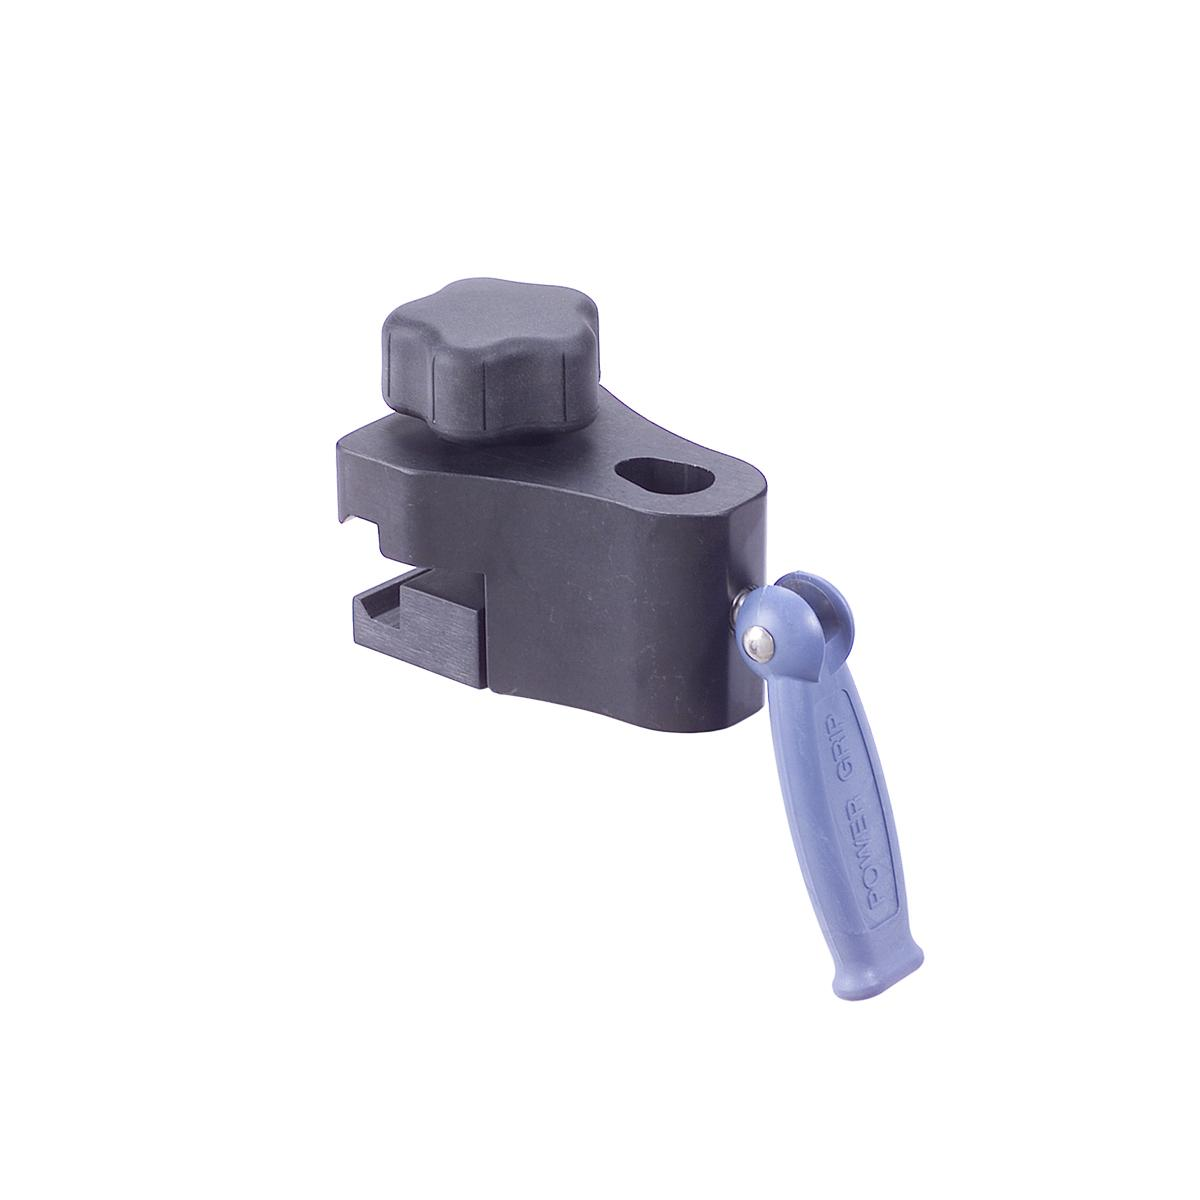 Simple Clamp, #A-40018 (US/EU)